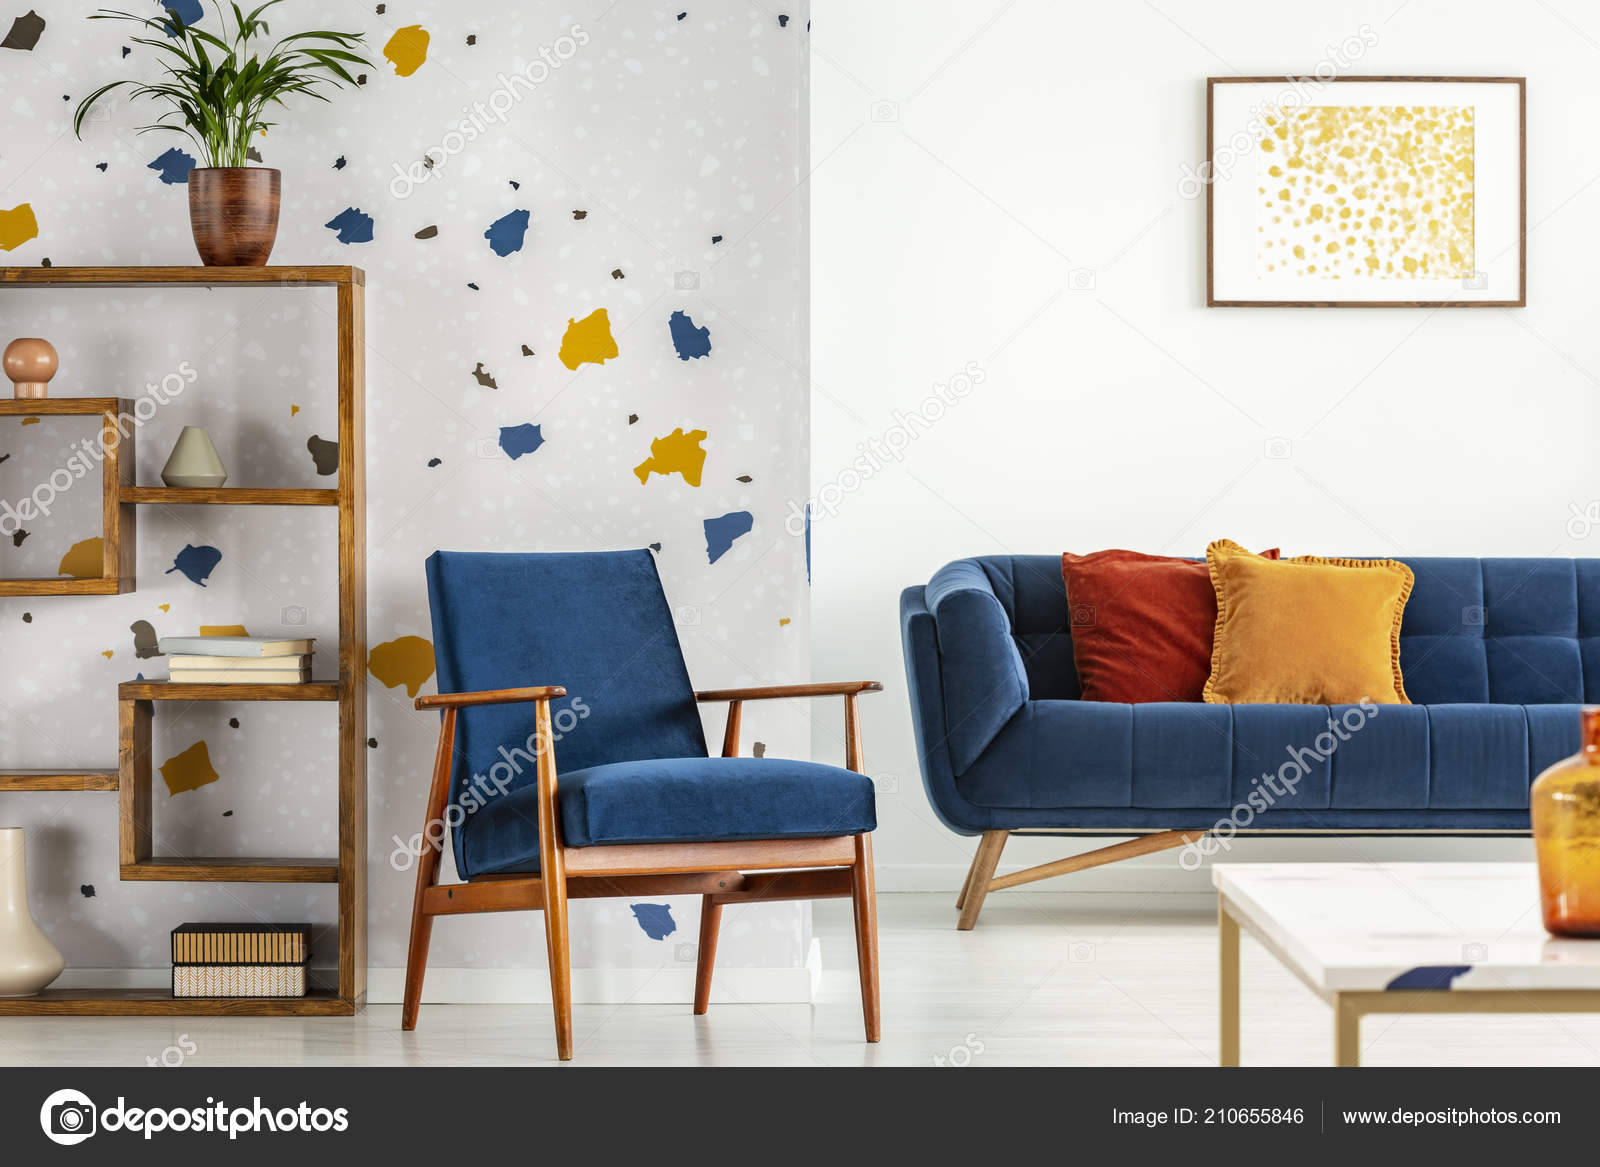 armchair couch pillows blue orange living room interior poster plant stock photo image by c photographee eu 210655846